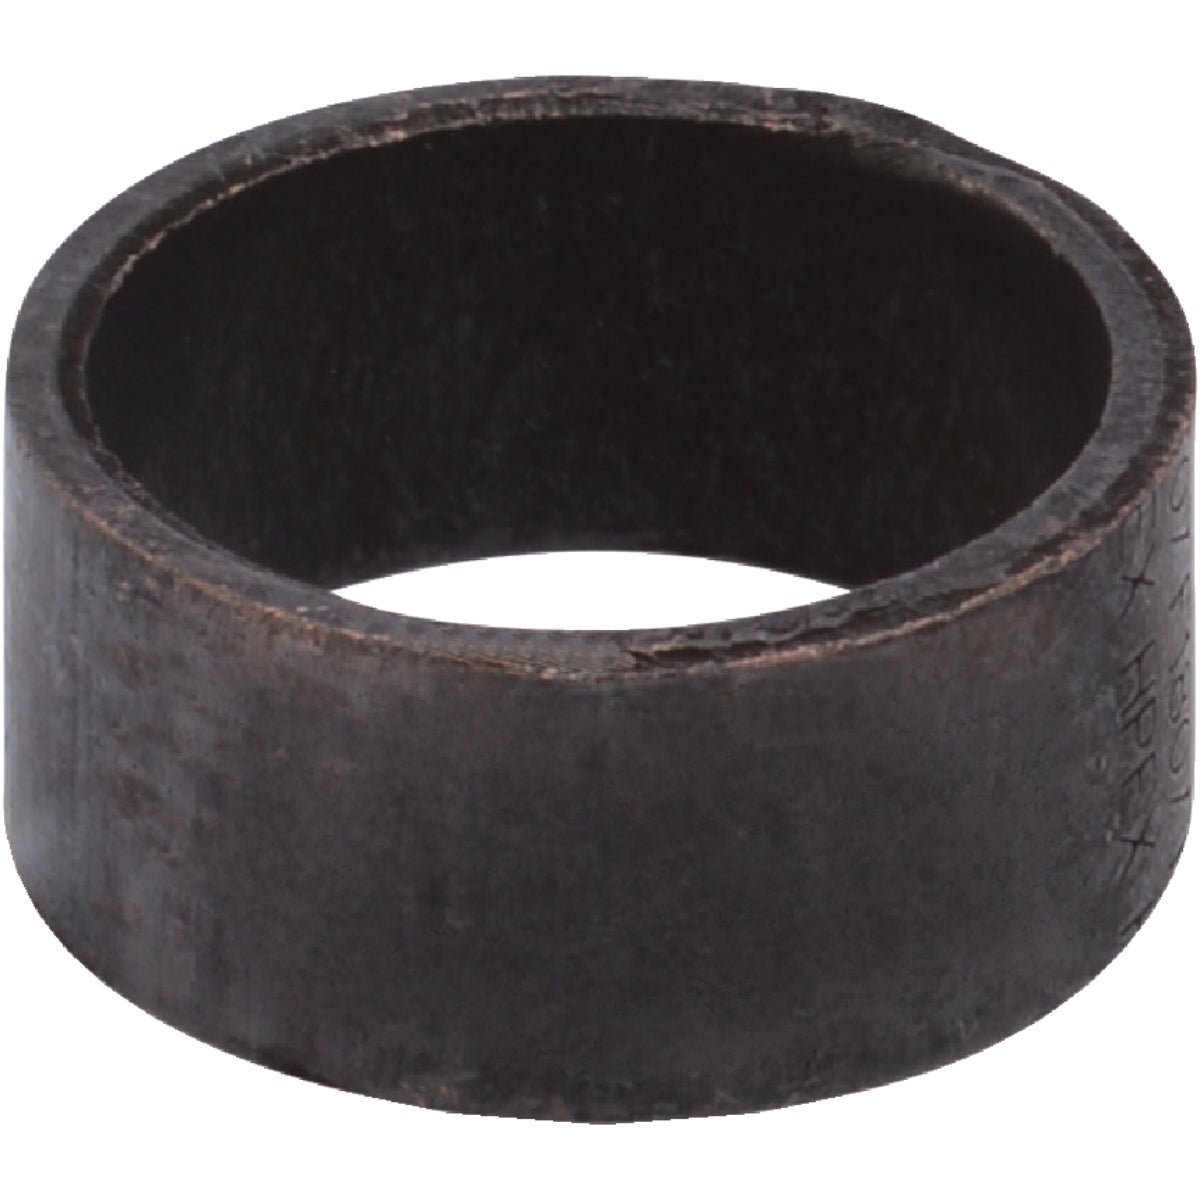 "25PK 1/2"" CRIMP RINGS - P-571 by Watts Pex"